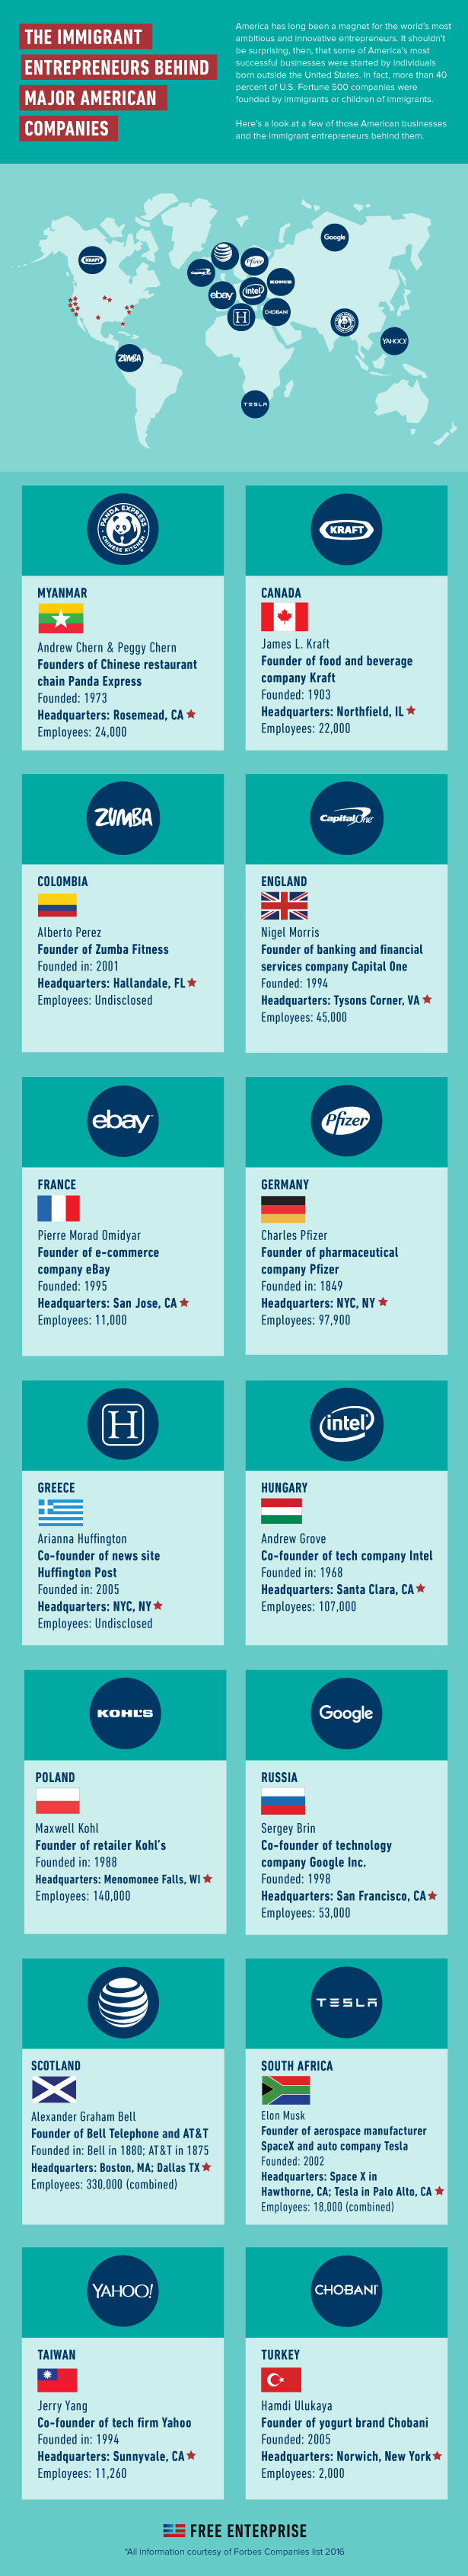 Most Successful American Businesses And Their Immigrant Entrepreneurs - Infographic